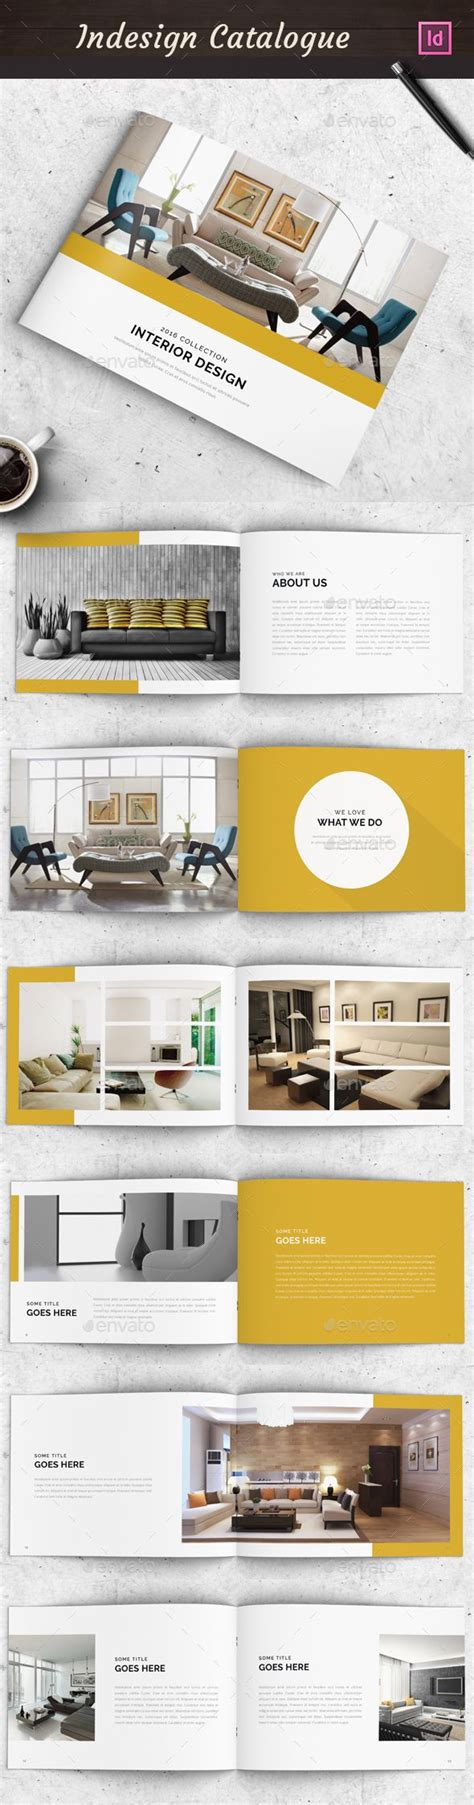 25 best ideas about interior design portfolios on